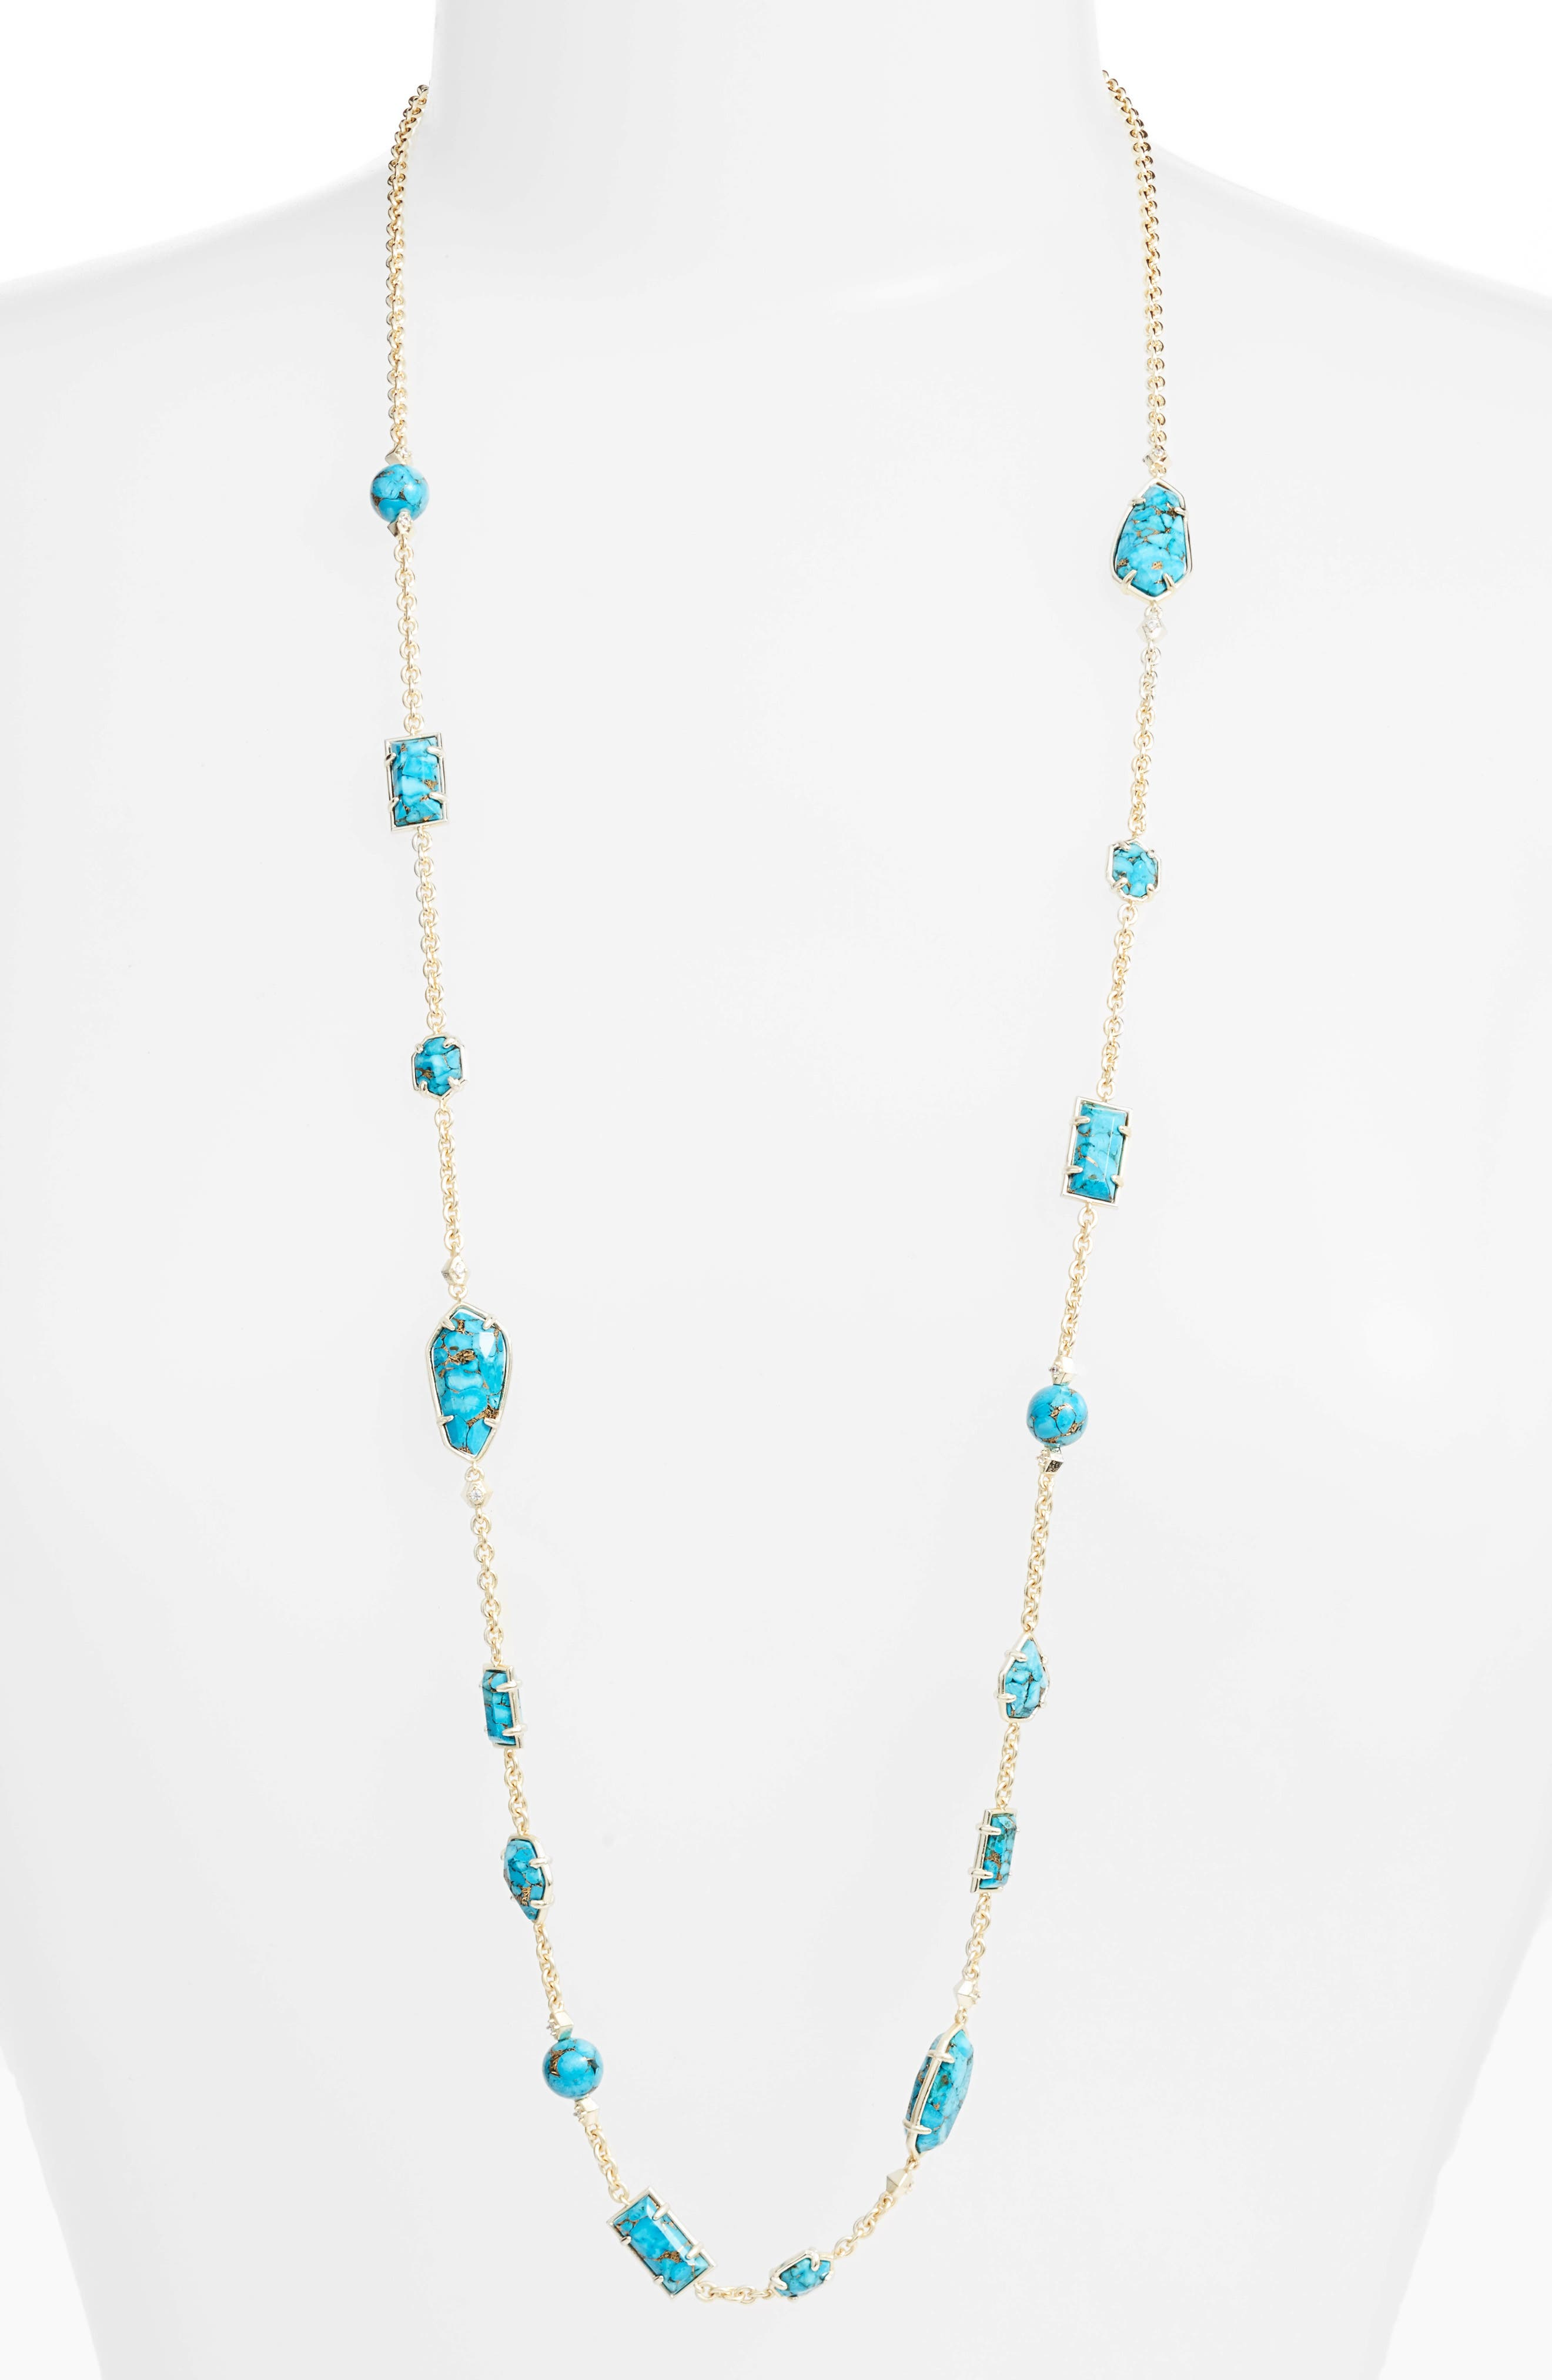 Alternate Image 1 Selected - Kendra Scott Joann Semiprecious Stone Station Necklace (Nordstrom Exclusive)